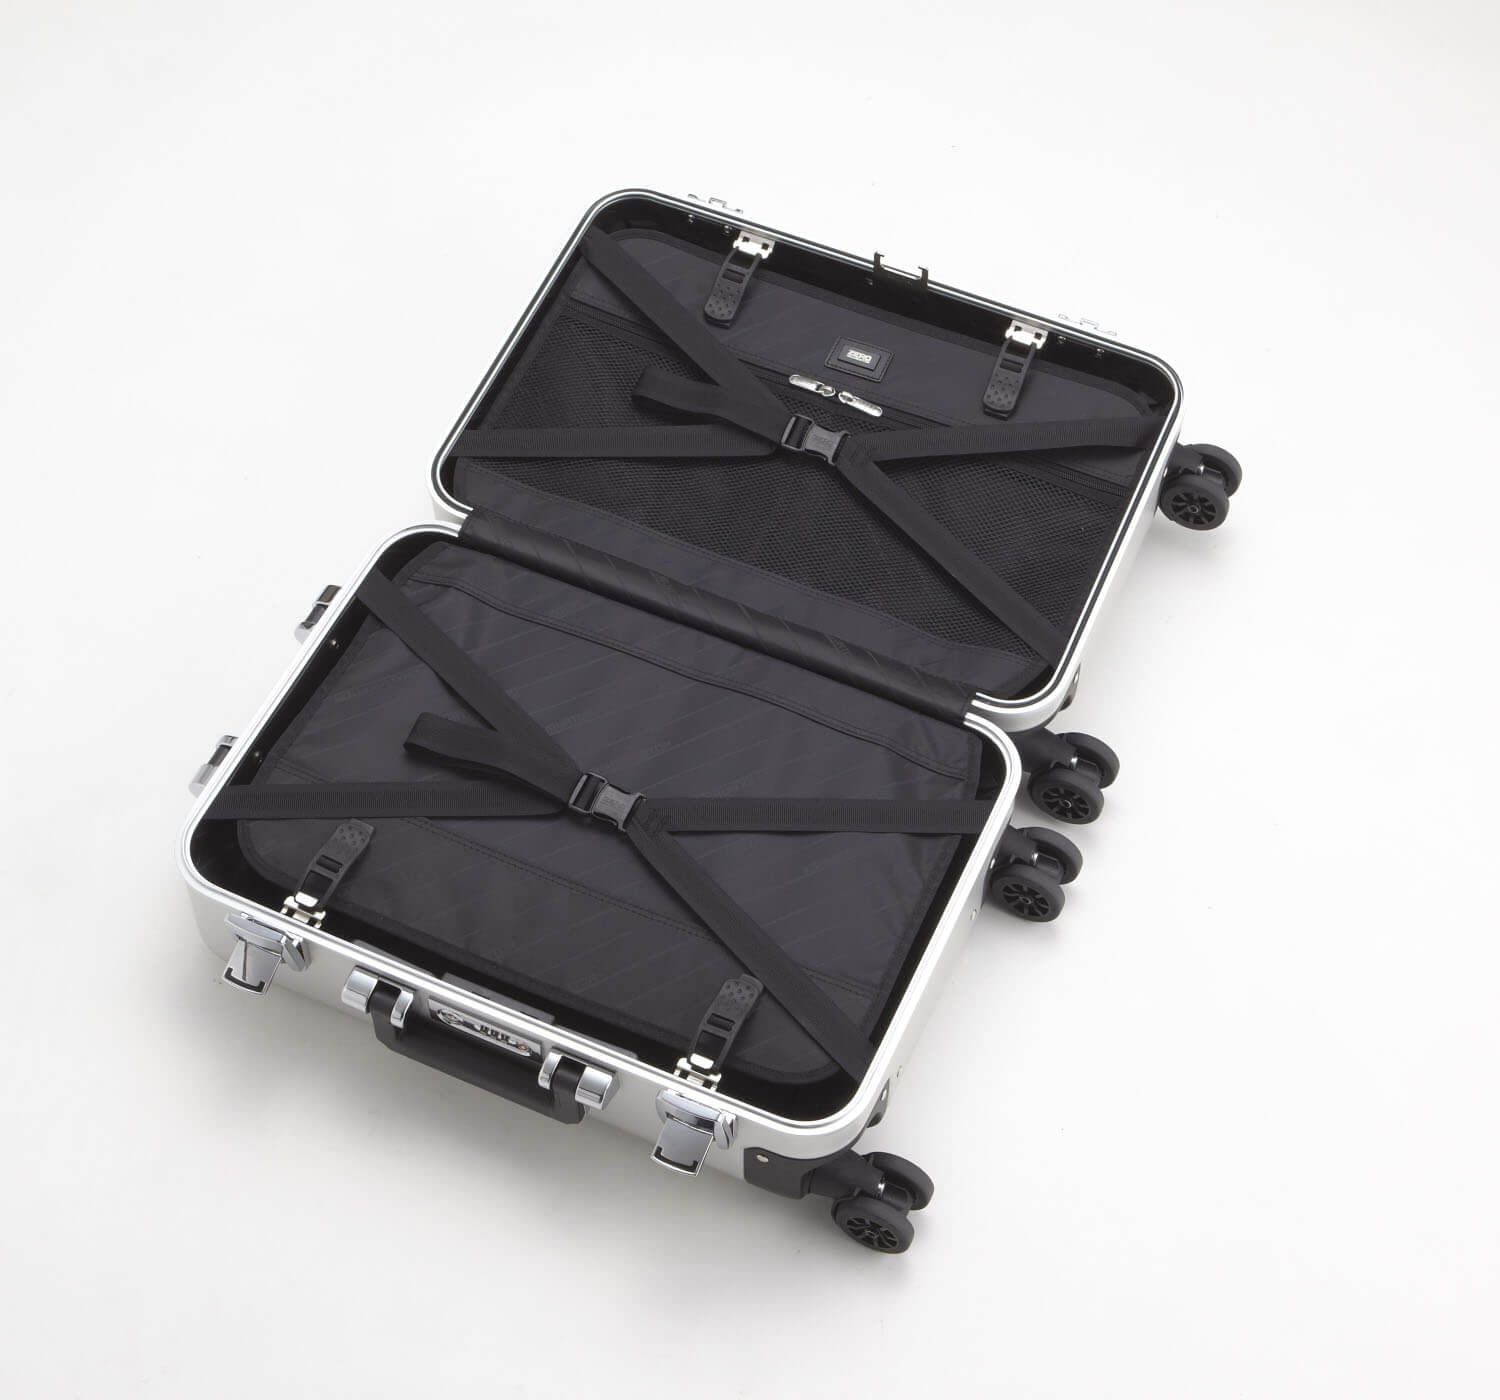 Classic Aluminum - Carry-On Luggage - фото 3